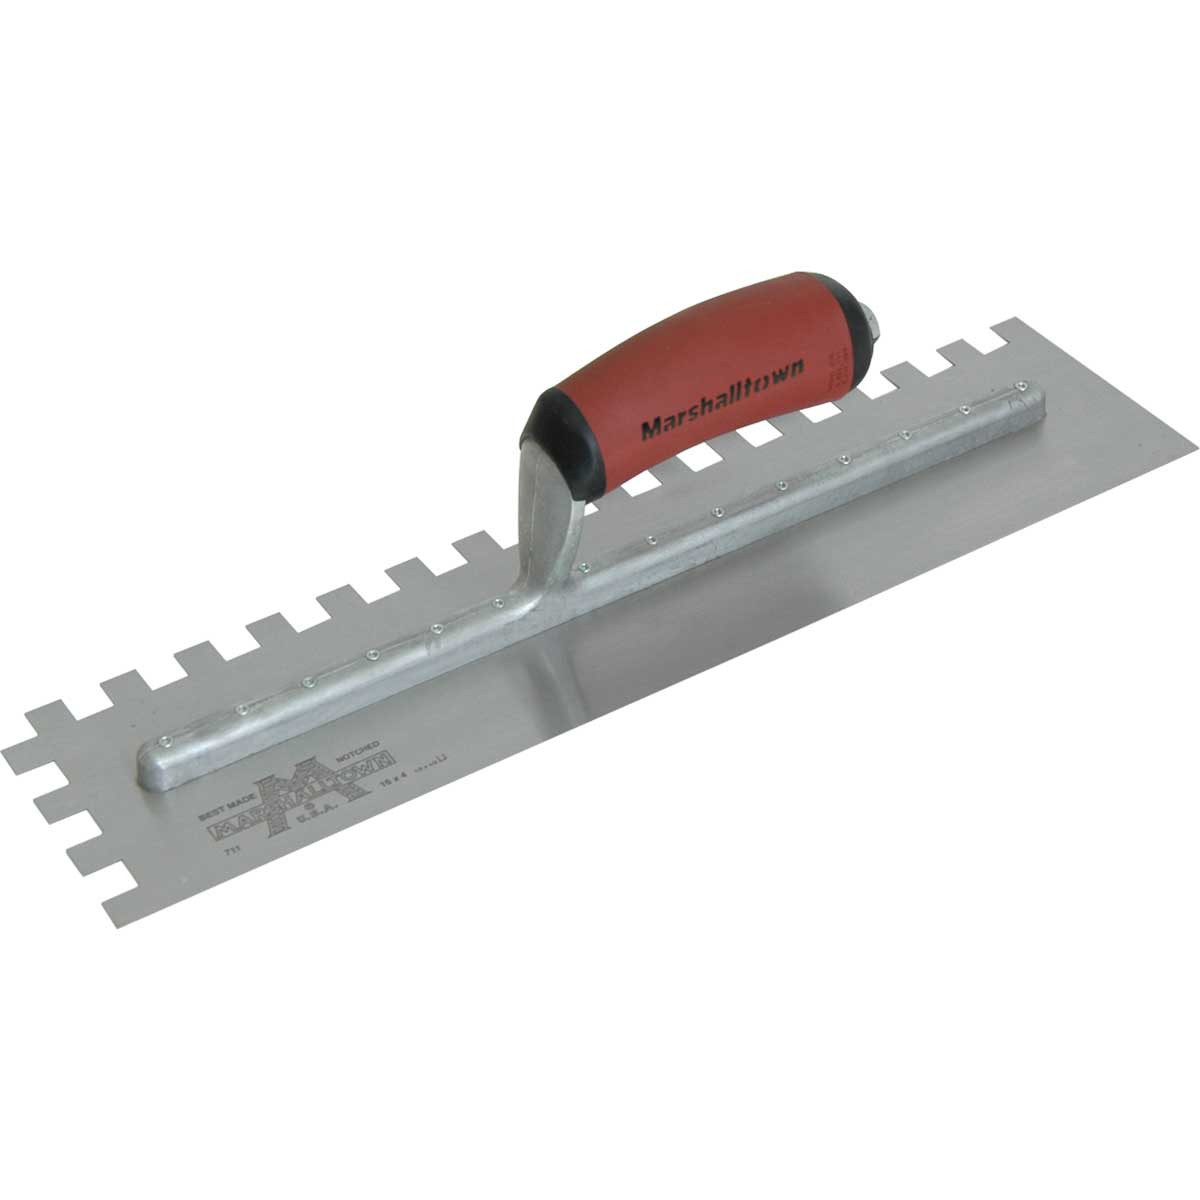 Marshalltown tile Notched Trowels